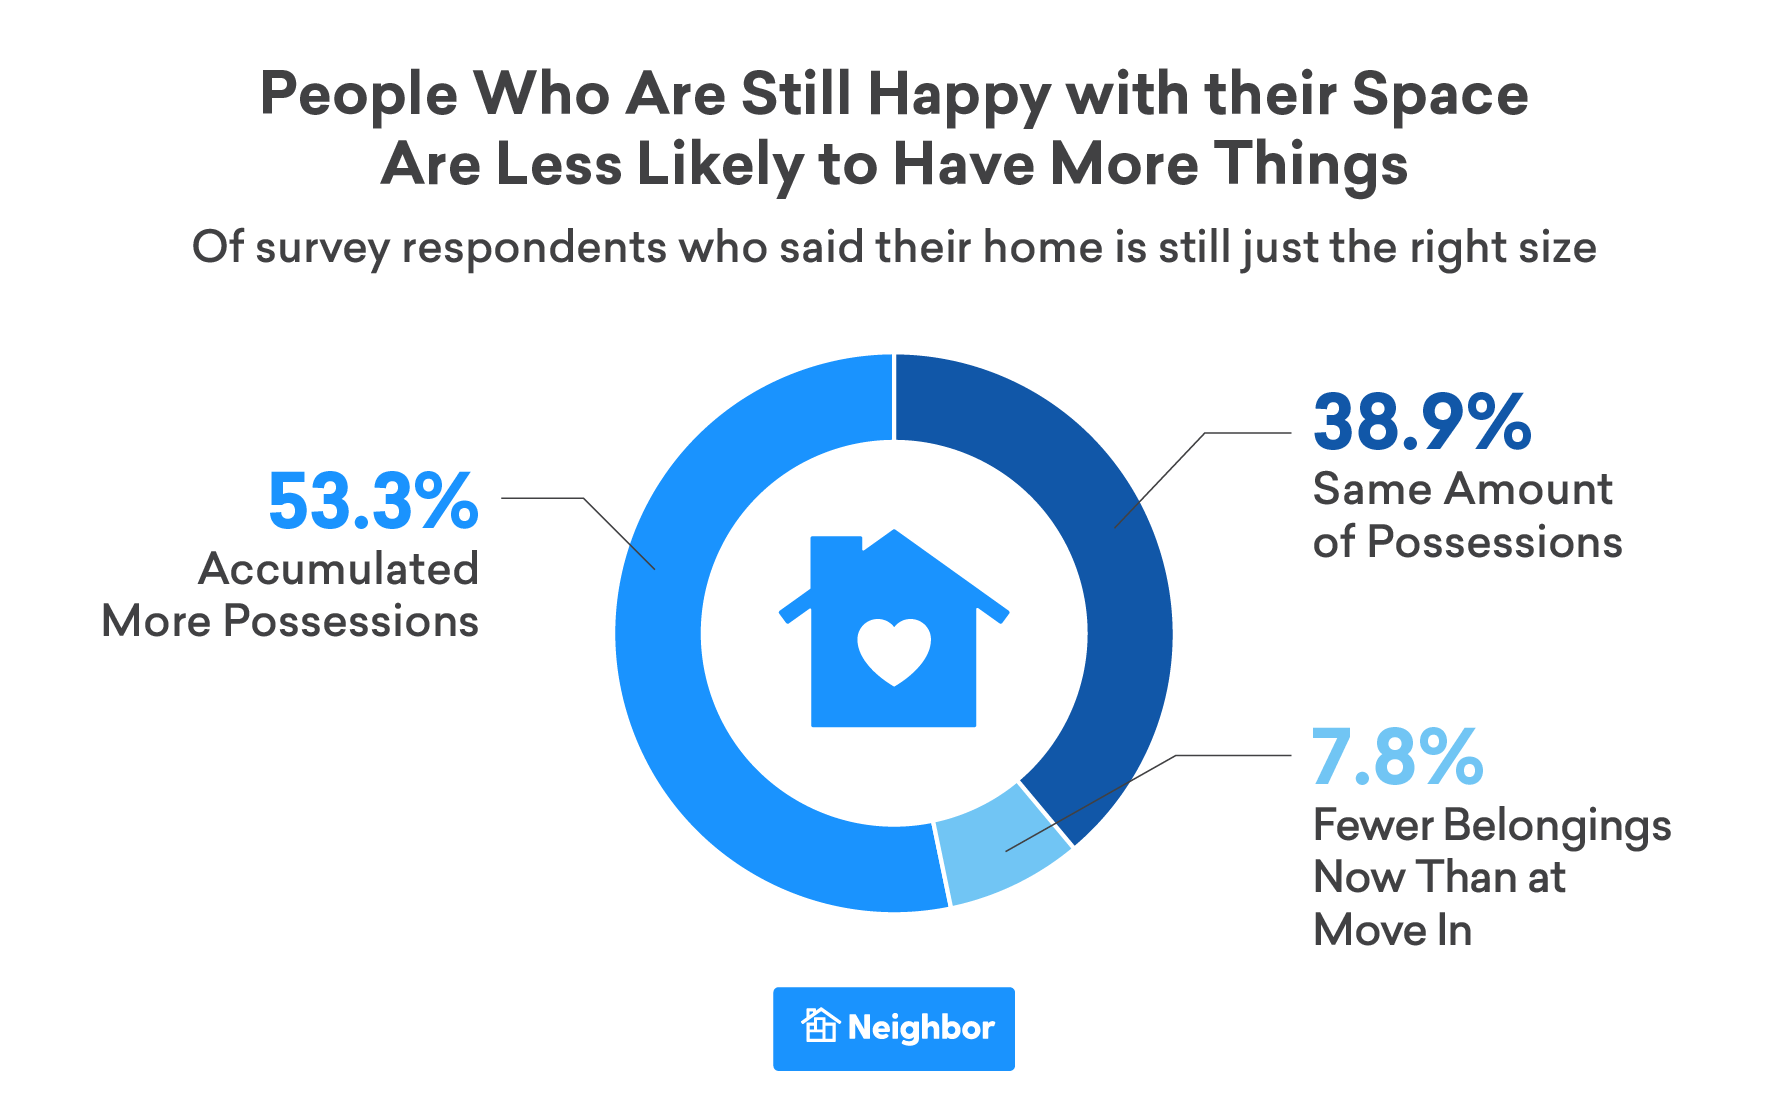 People Who Are Still Happy with their Space Are Less Likely to Have More Things